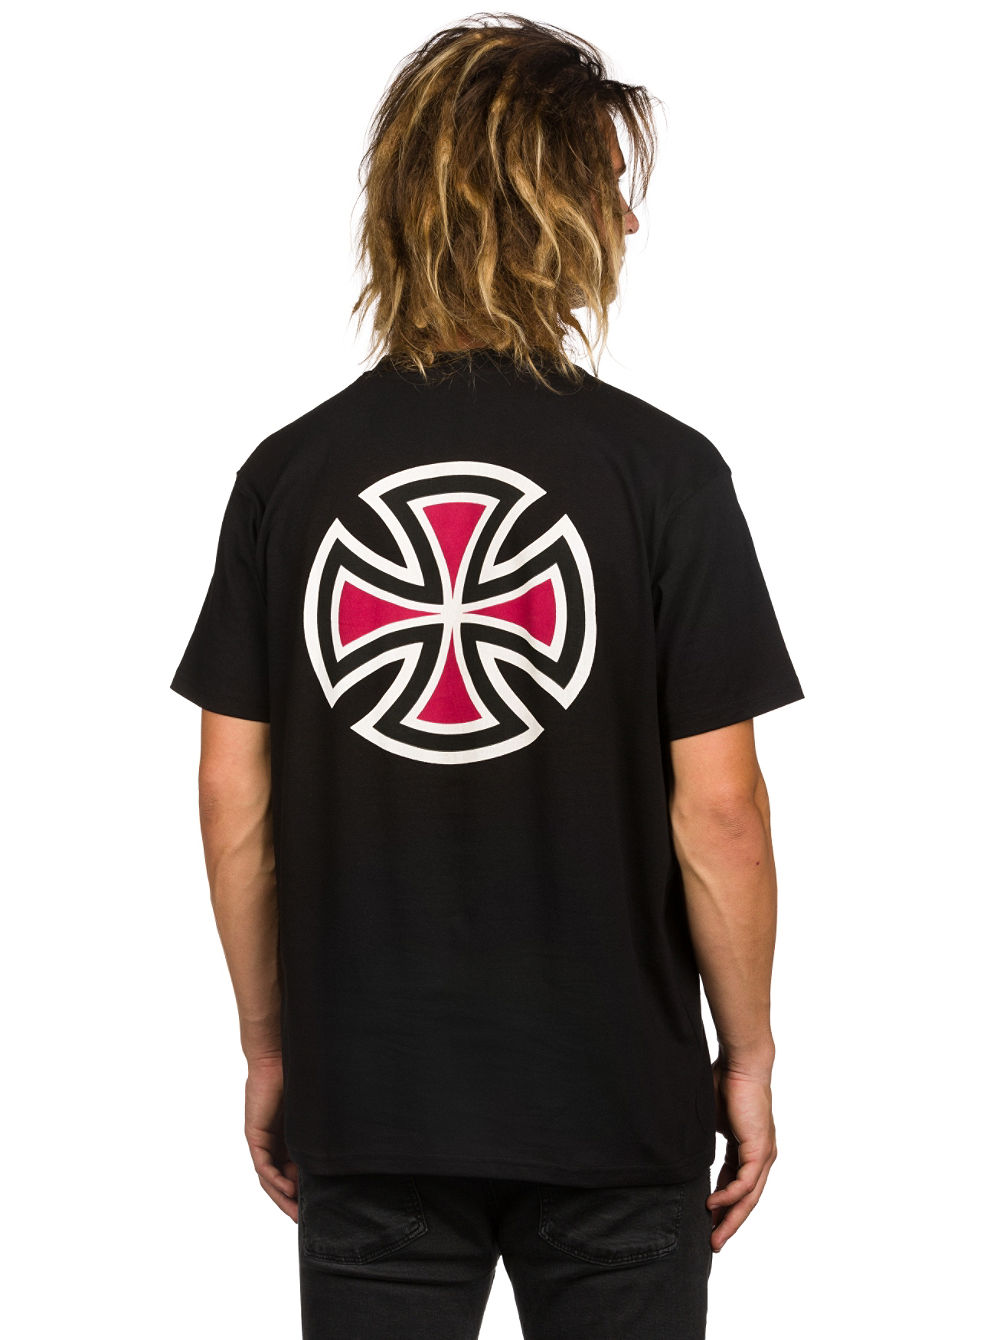 Bar Cross T-Shirt